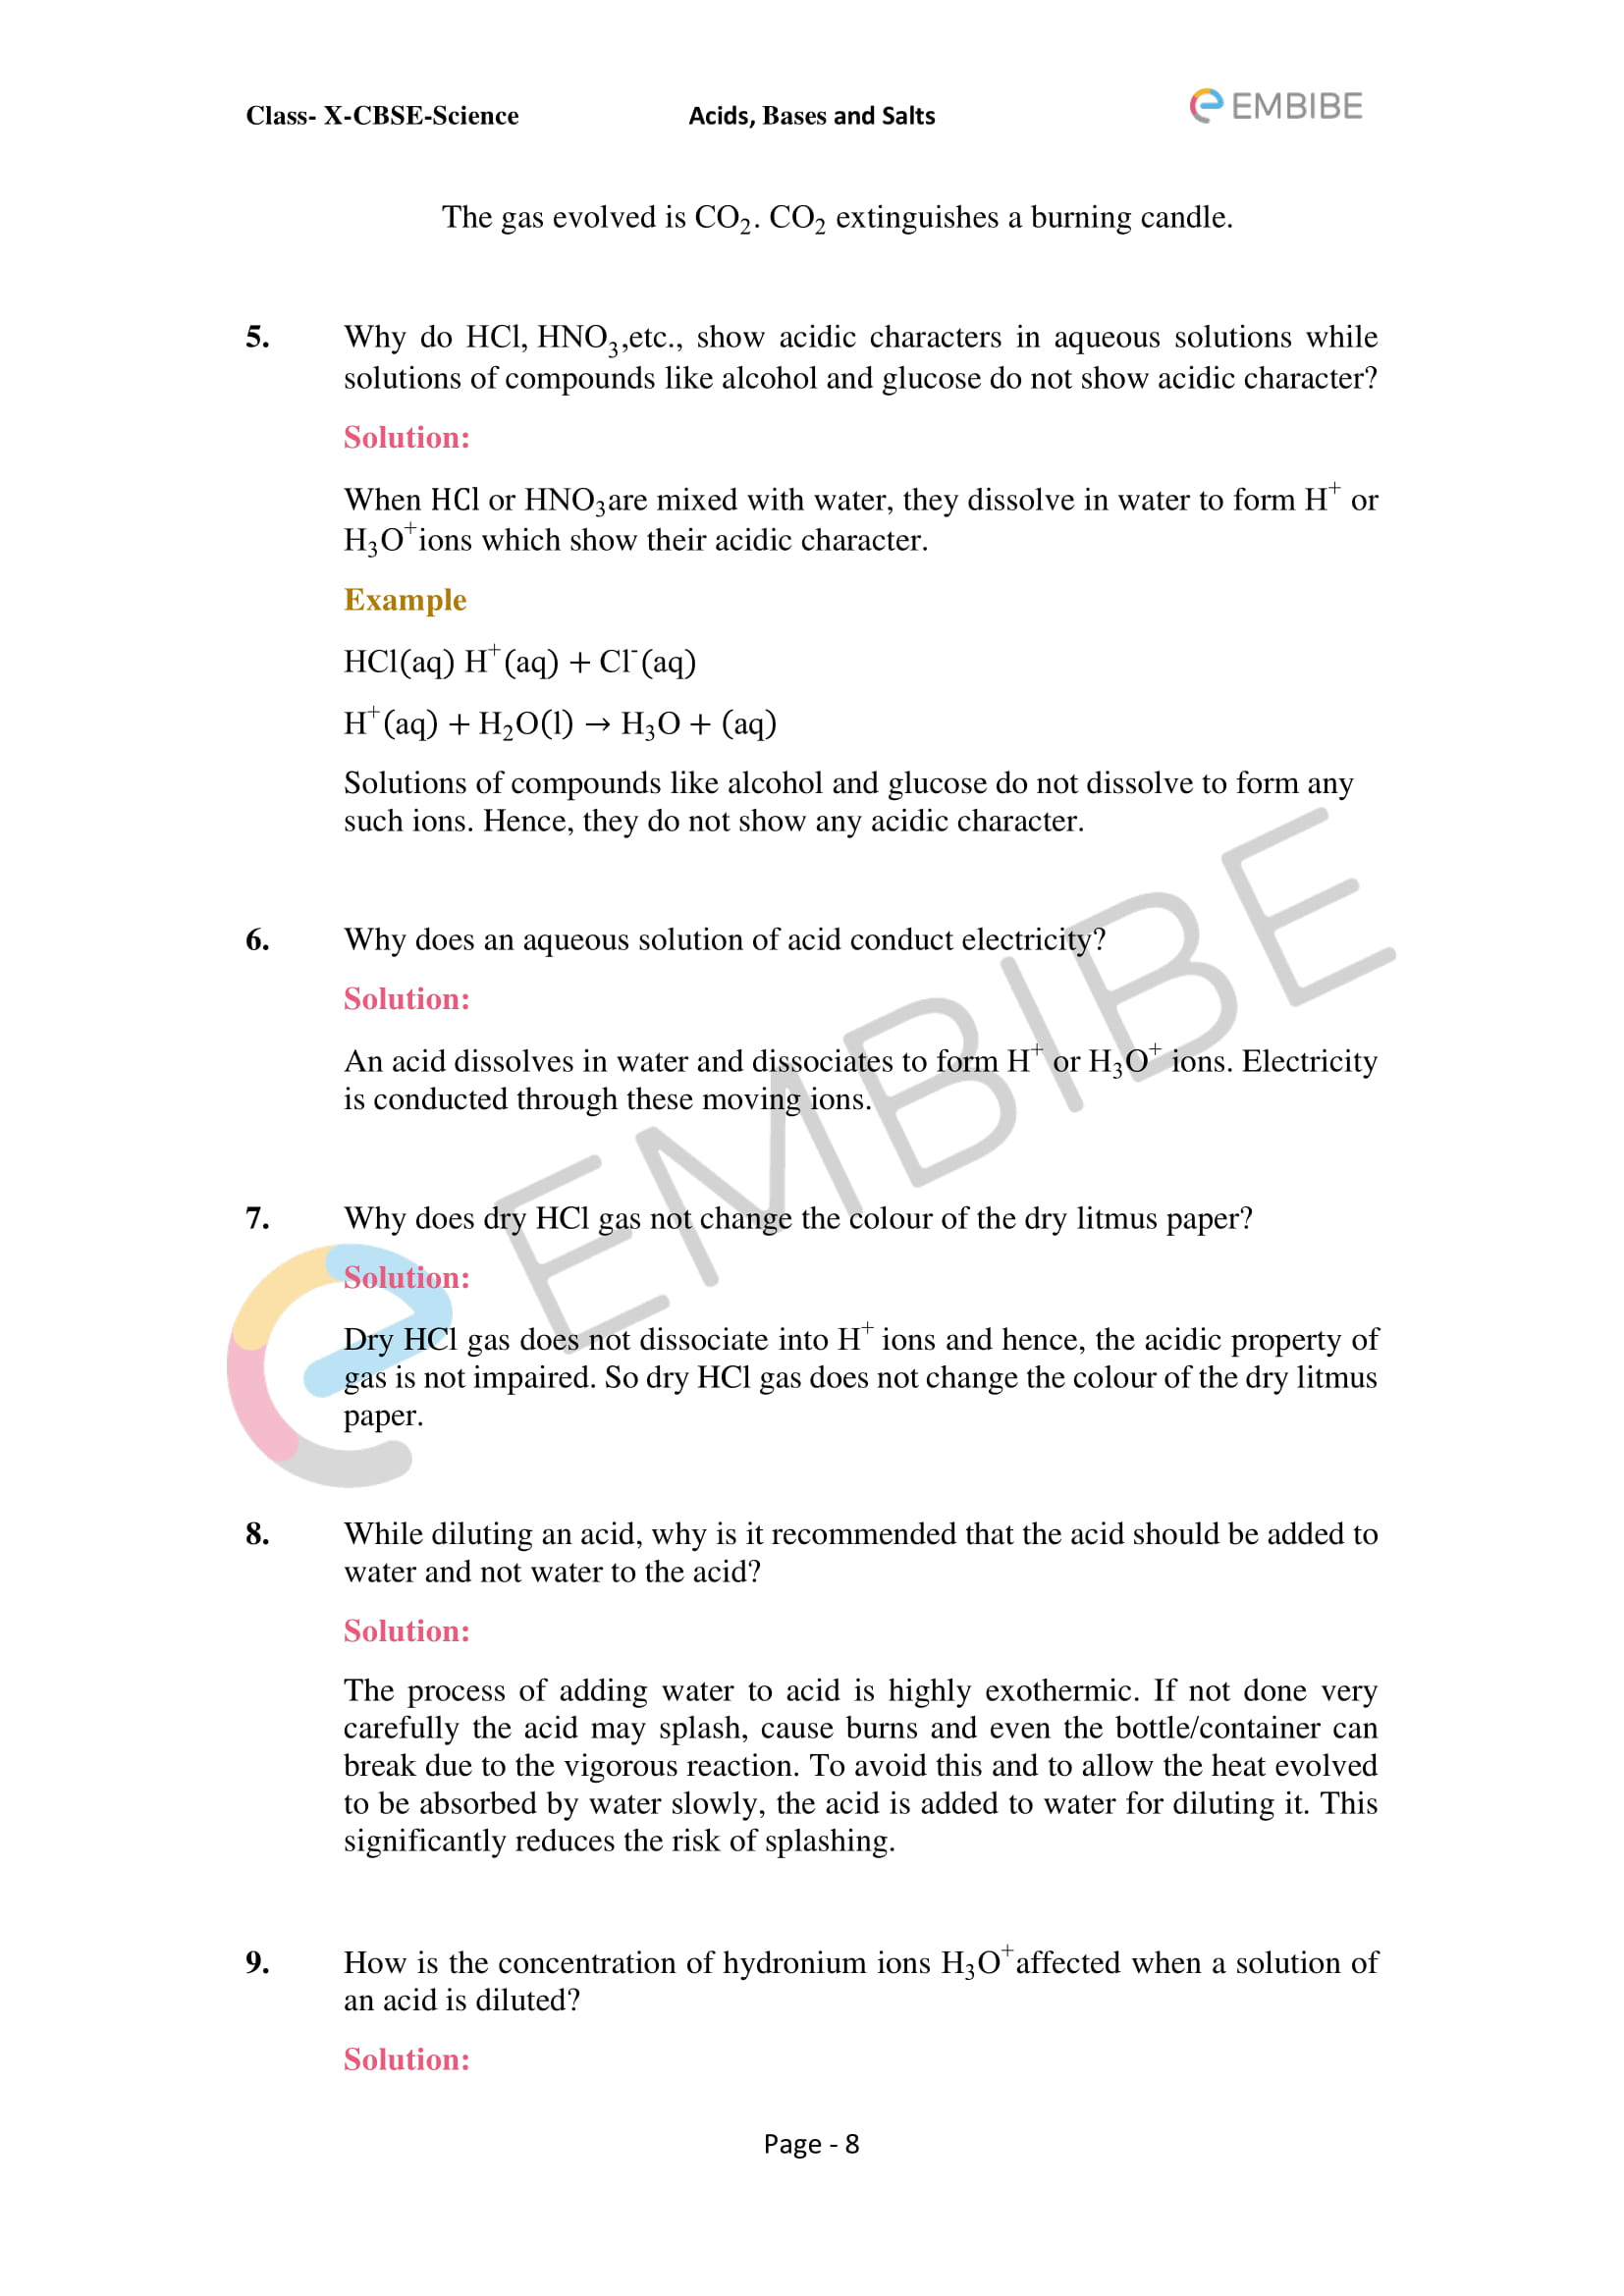 CBSE NCERT Solutions For Class 10 Science Chapter 2: Acids, Bases & Salts - 8